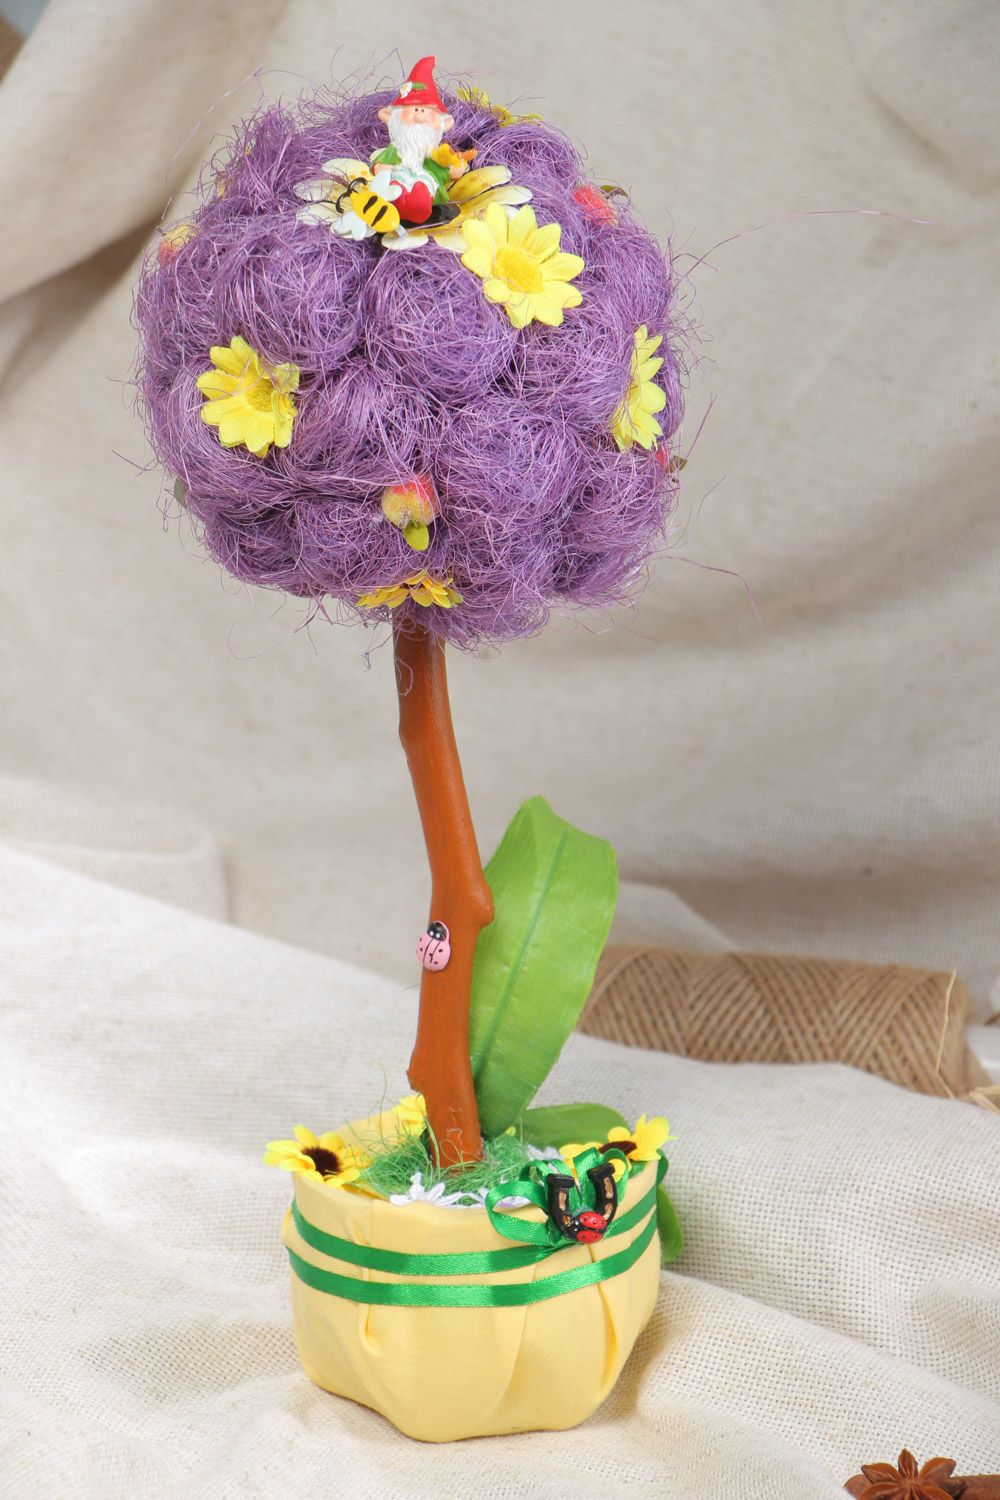 Handmade decorative tree topiary with violet sisal and artificial flowers photo 1